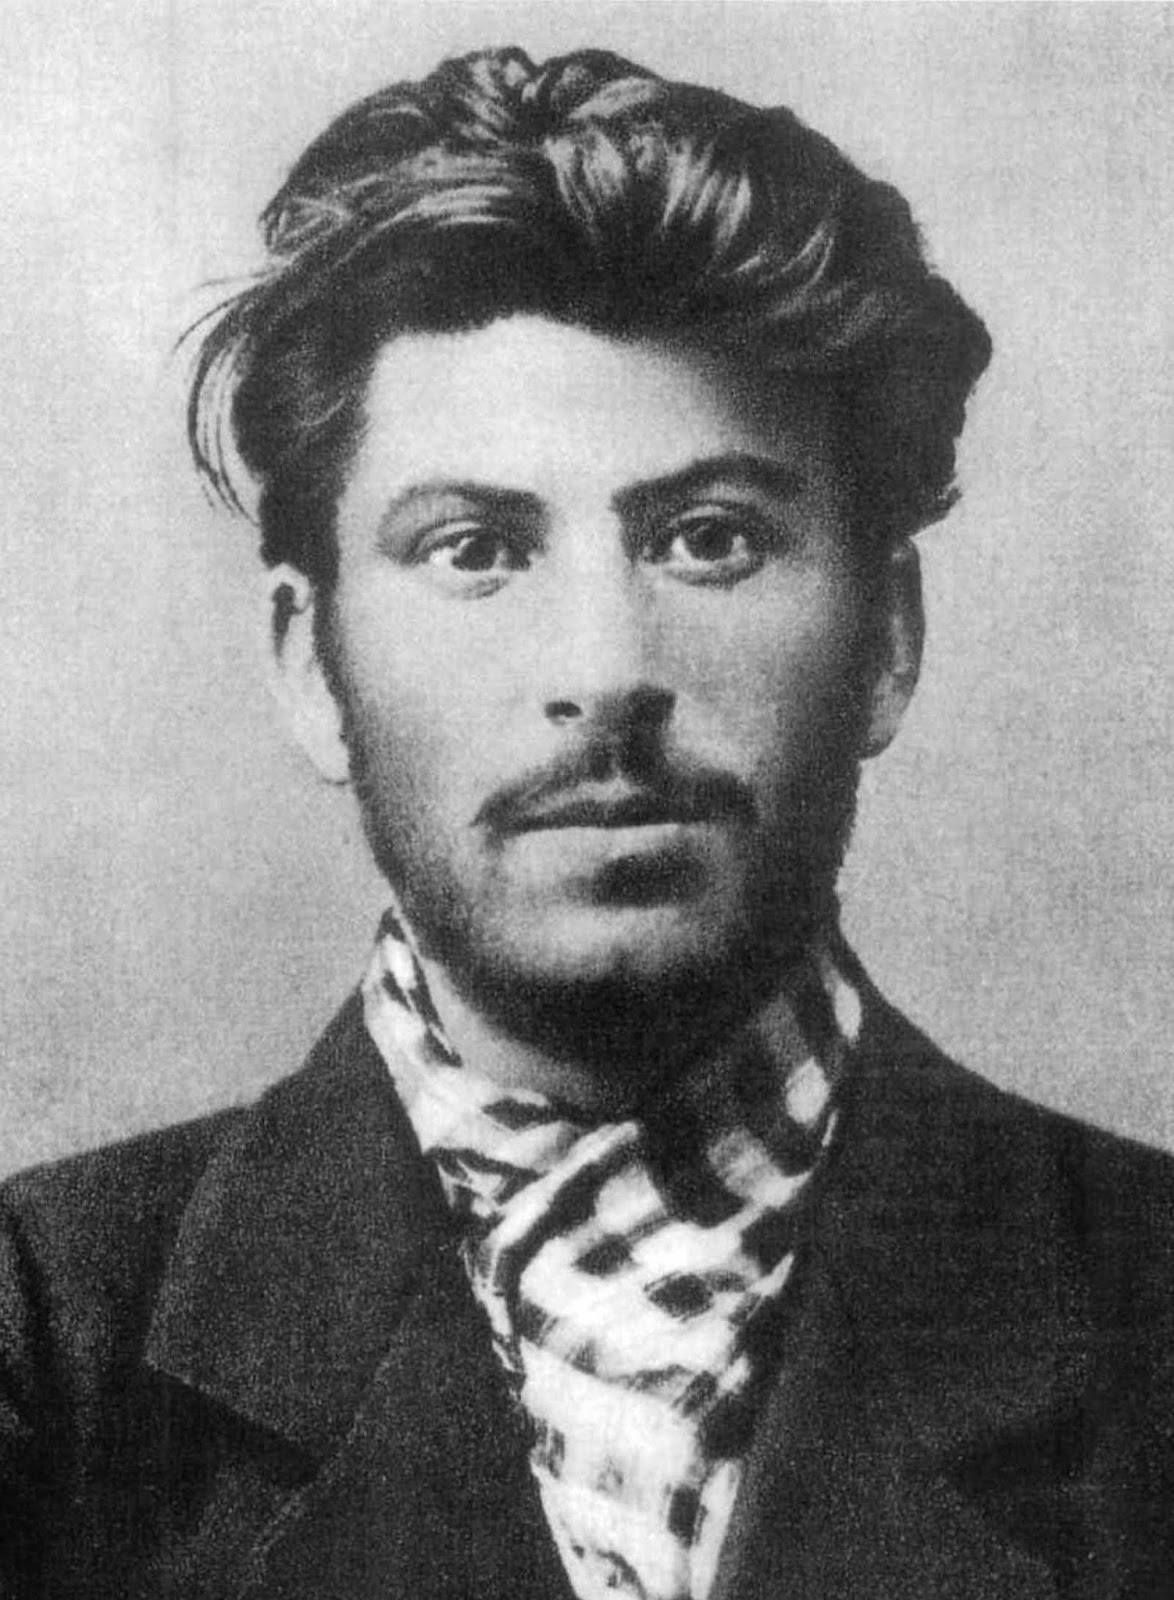 How strong was Joseph Stalin